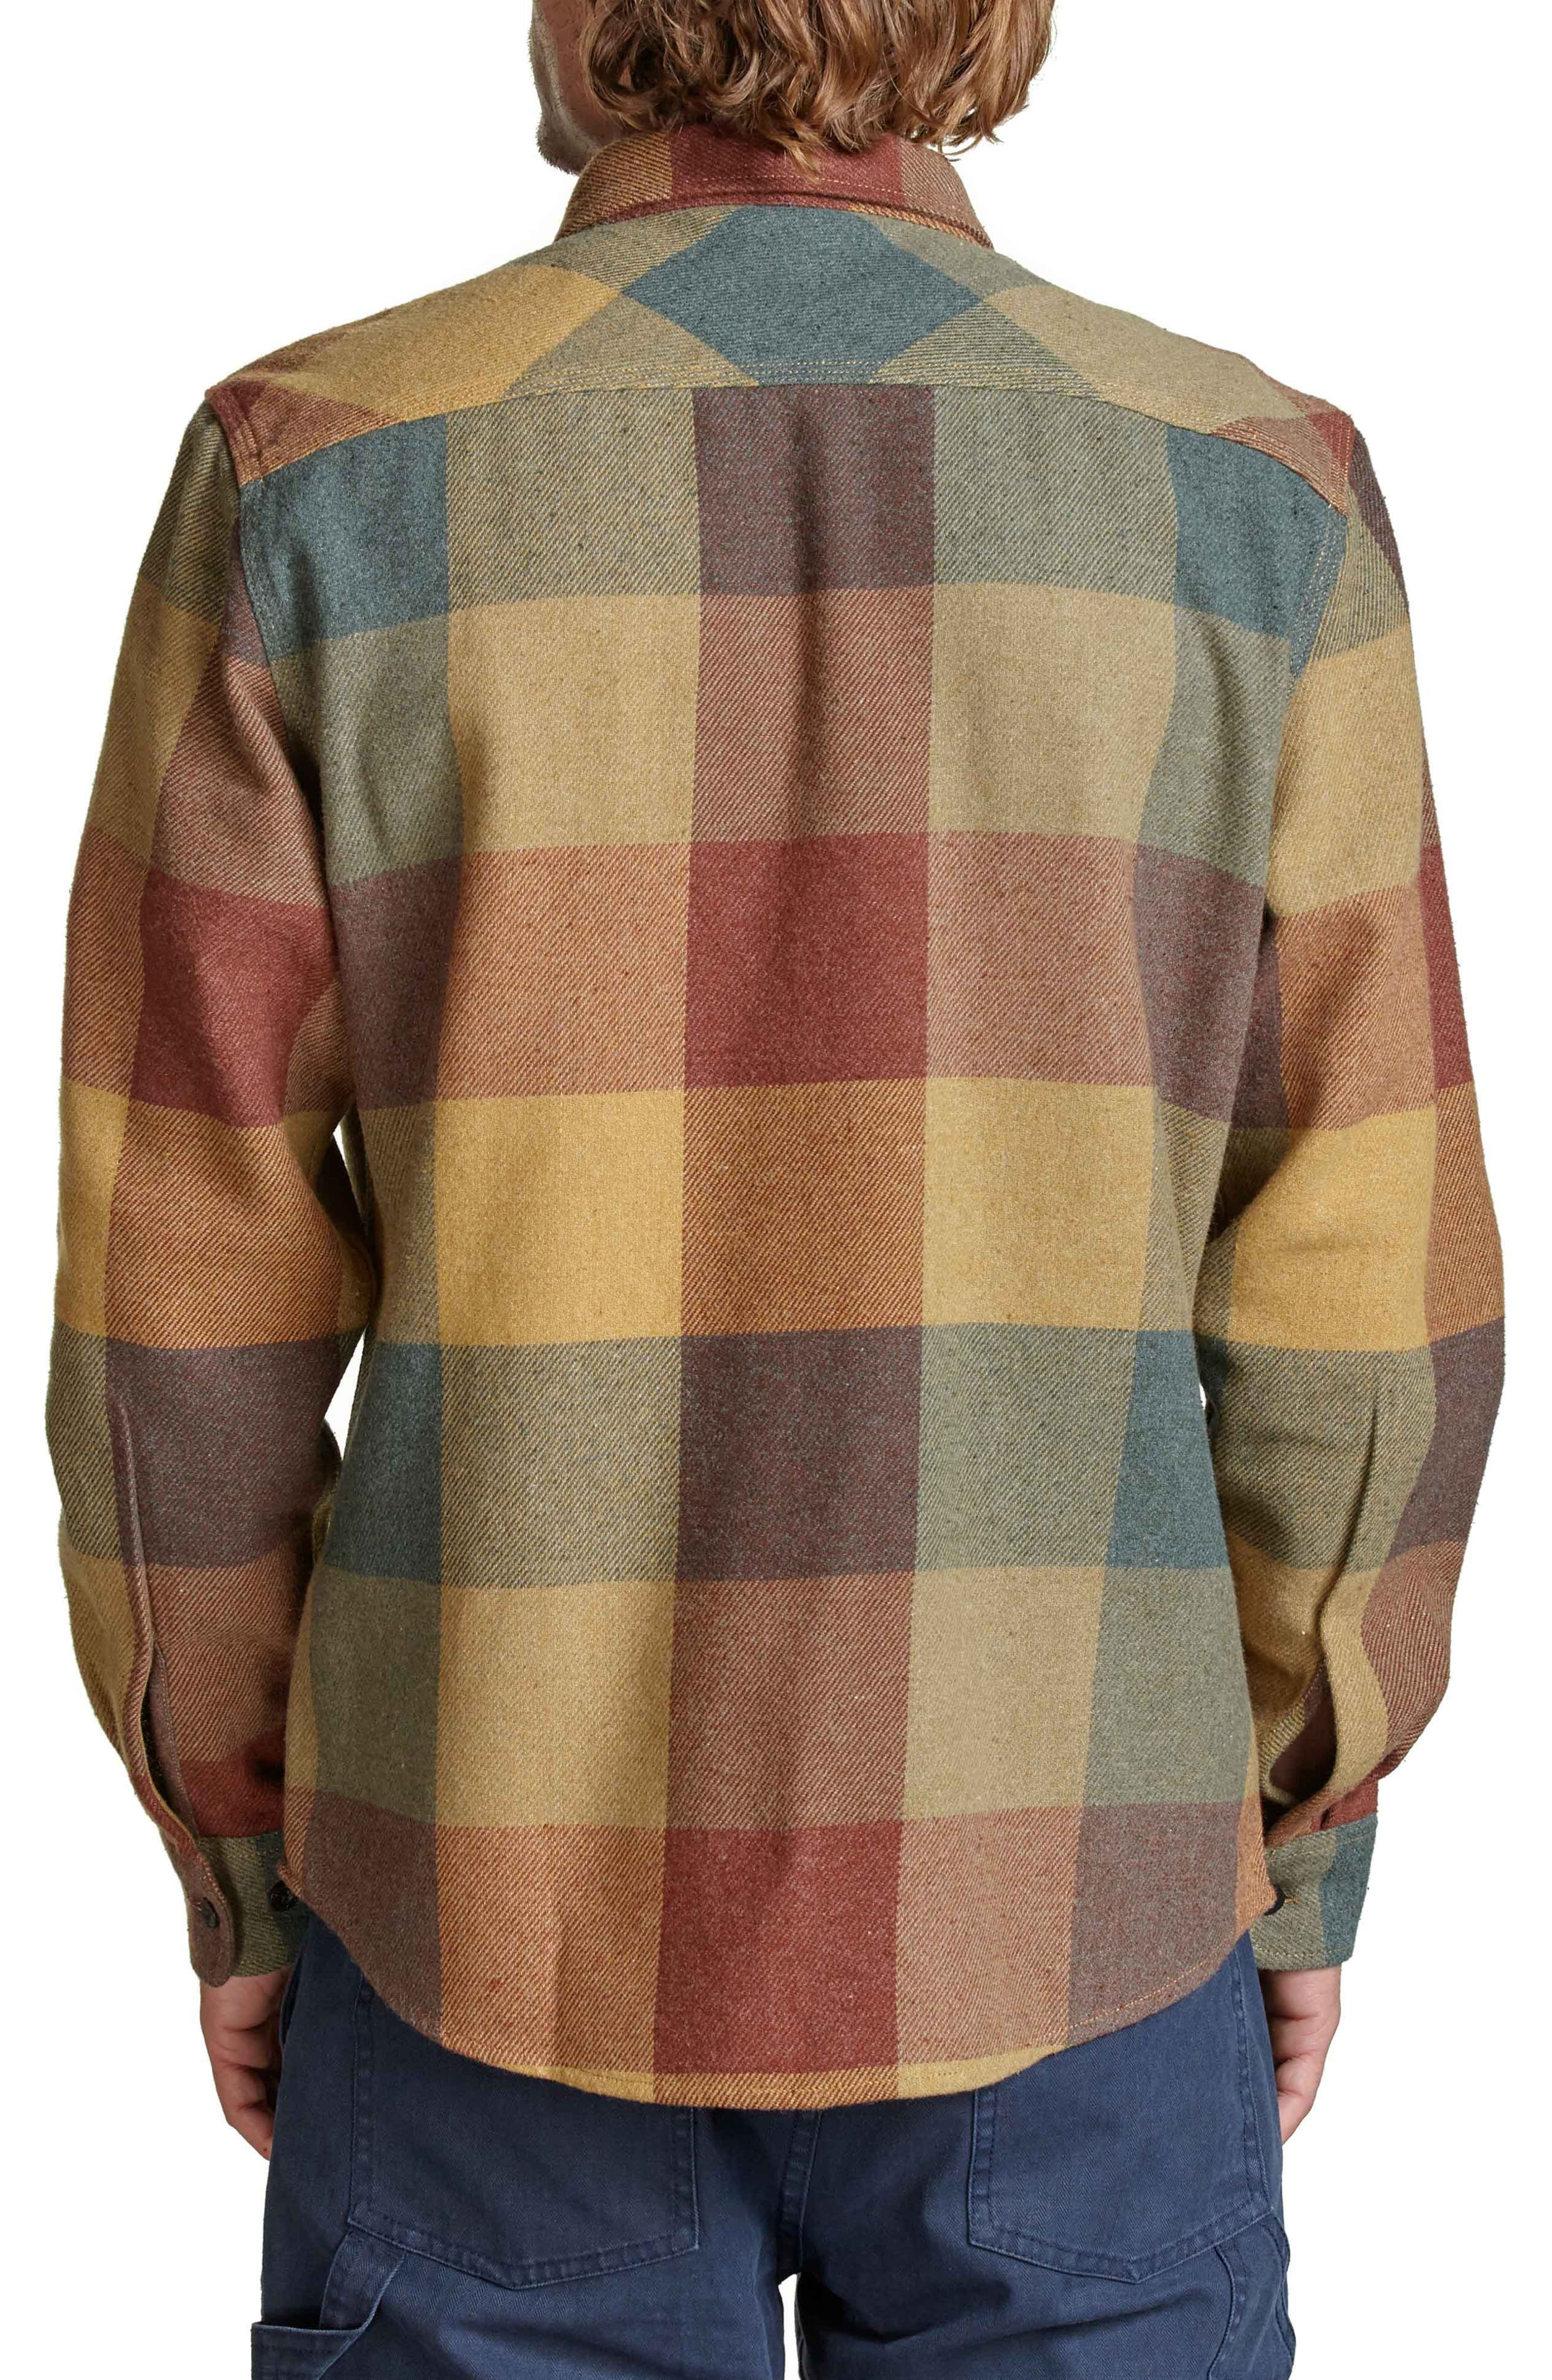 Bowery Flannel Shirt,                             Alternate thumbnail 2, color,                             Rust/ Copper